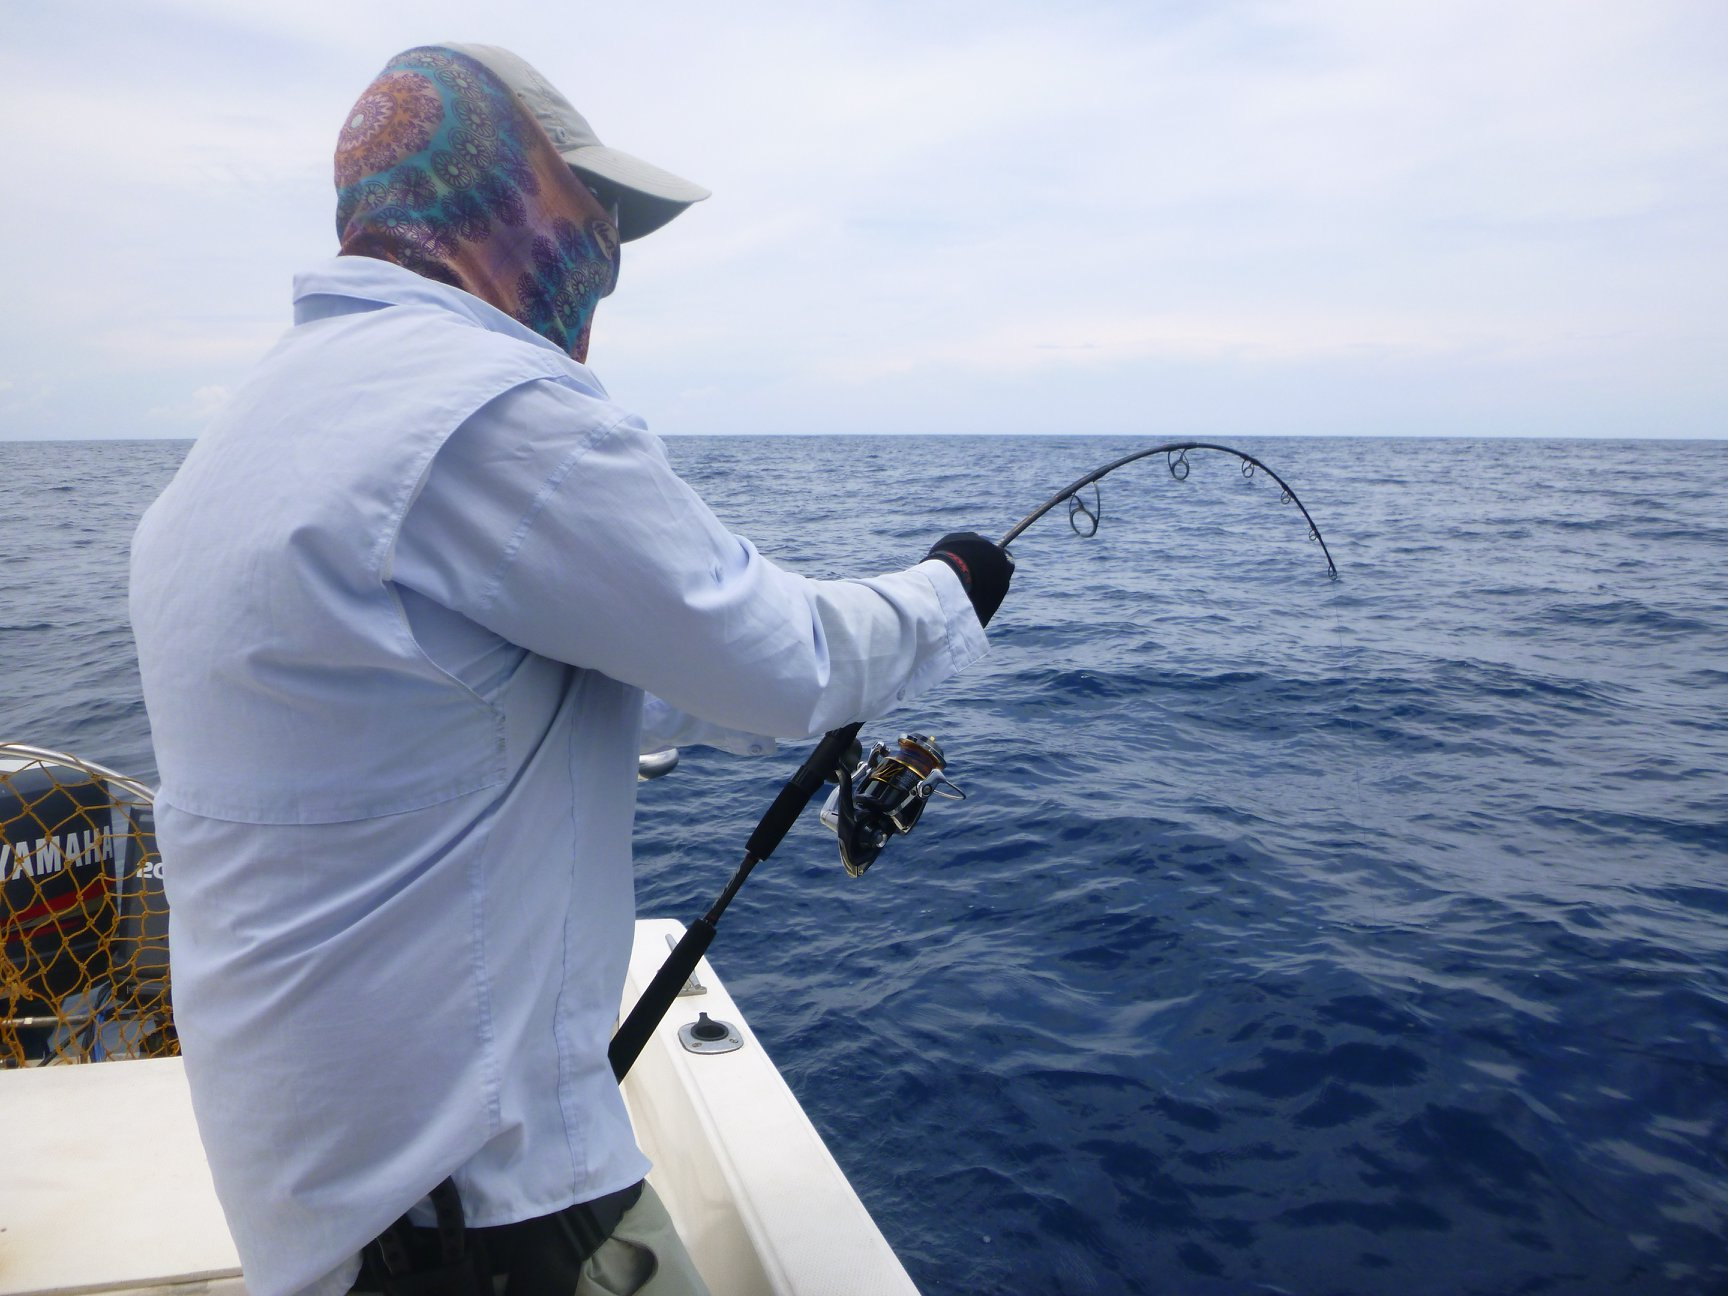 Jigging Sri Lanka Deep sea fishing Sportfishing Lanka.jpg